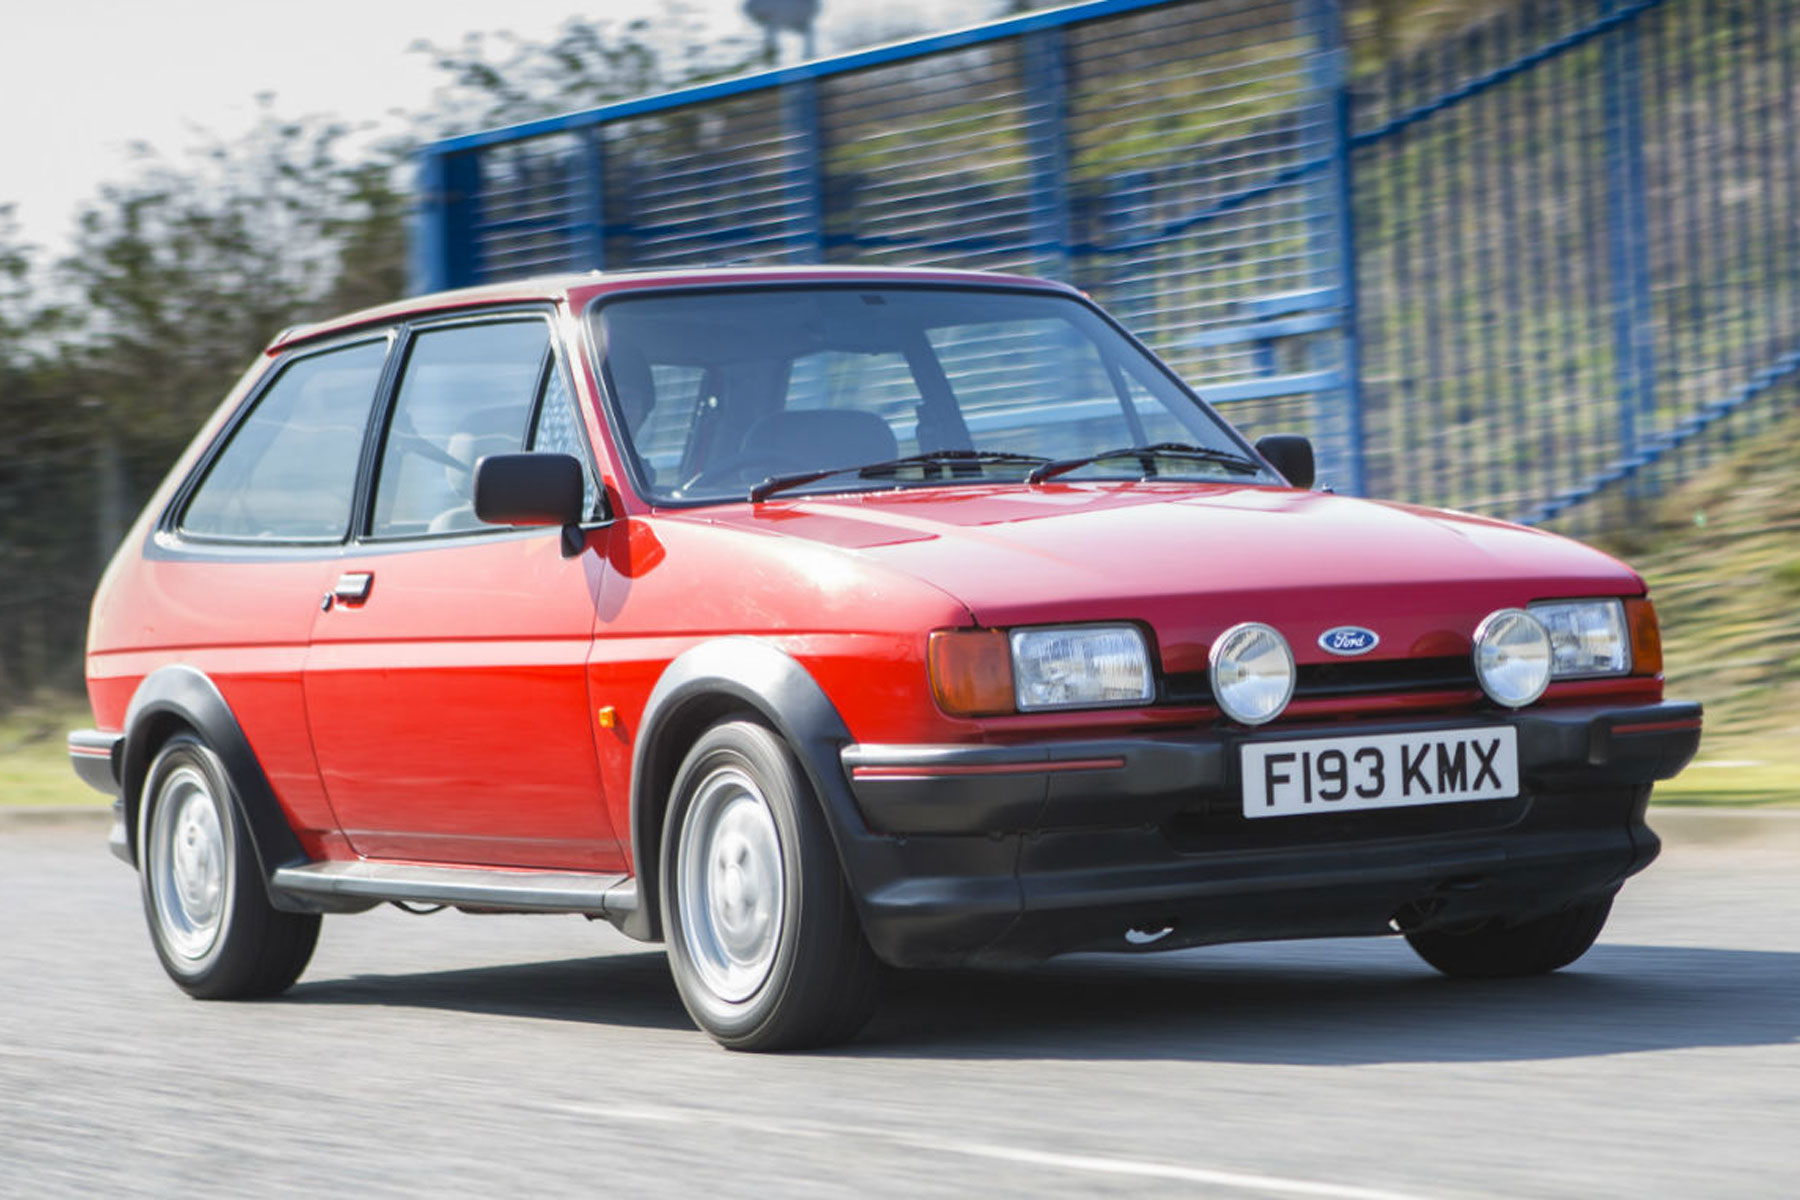 ford fiesta xr2 review the hot hatch we d choose over a 205 gti motoring research. Black Bedroom Furniture Sets. Home Design Ideas